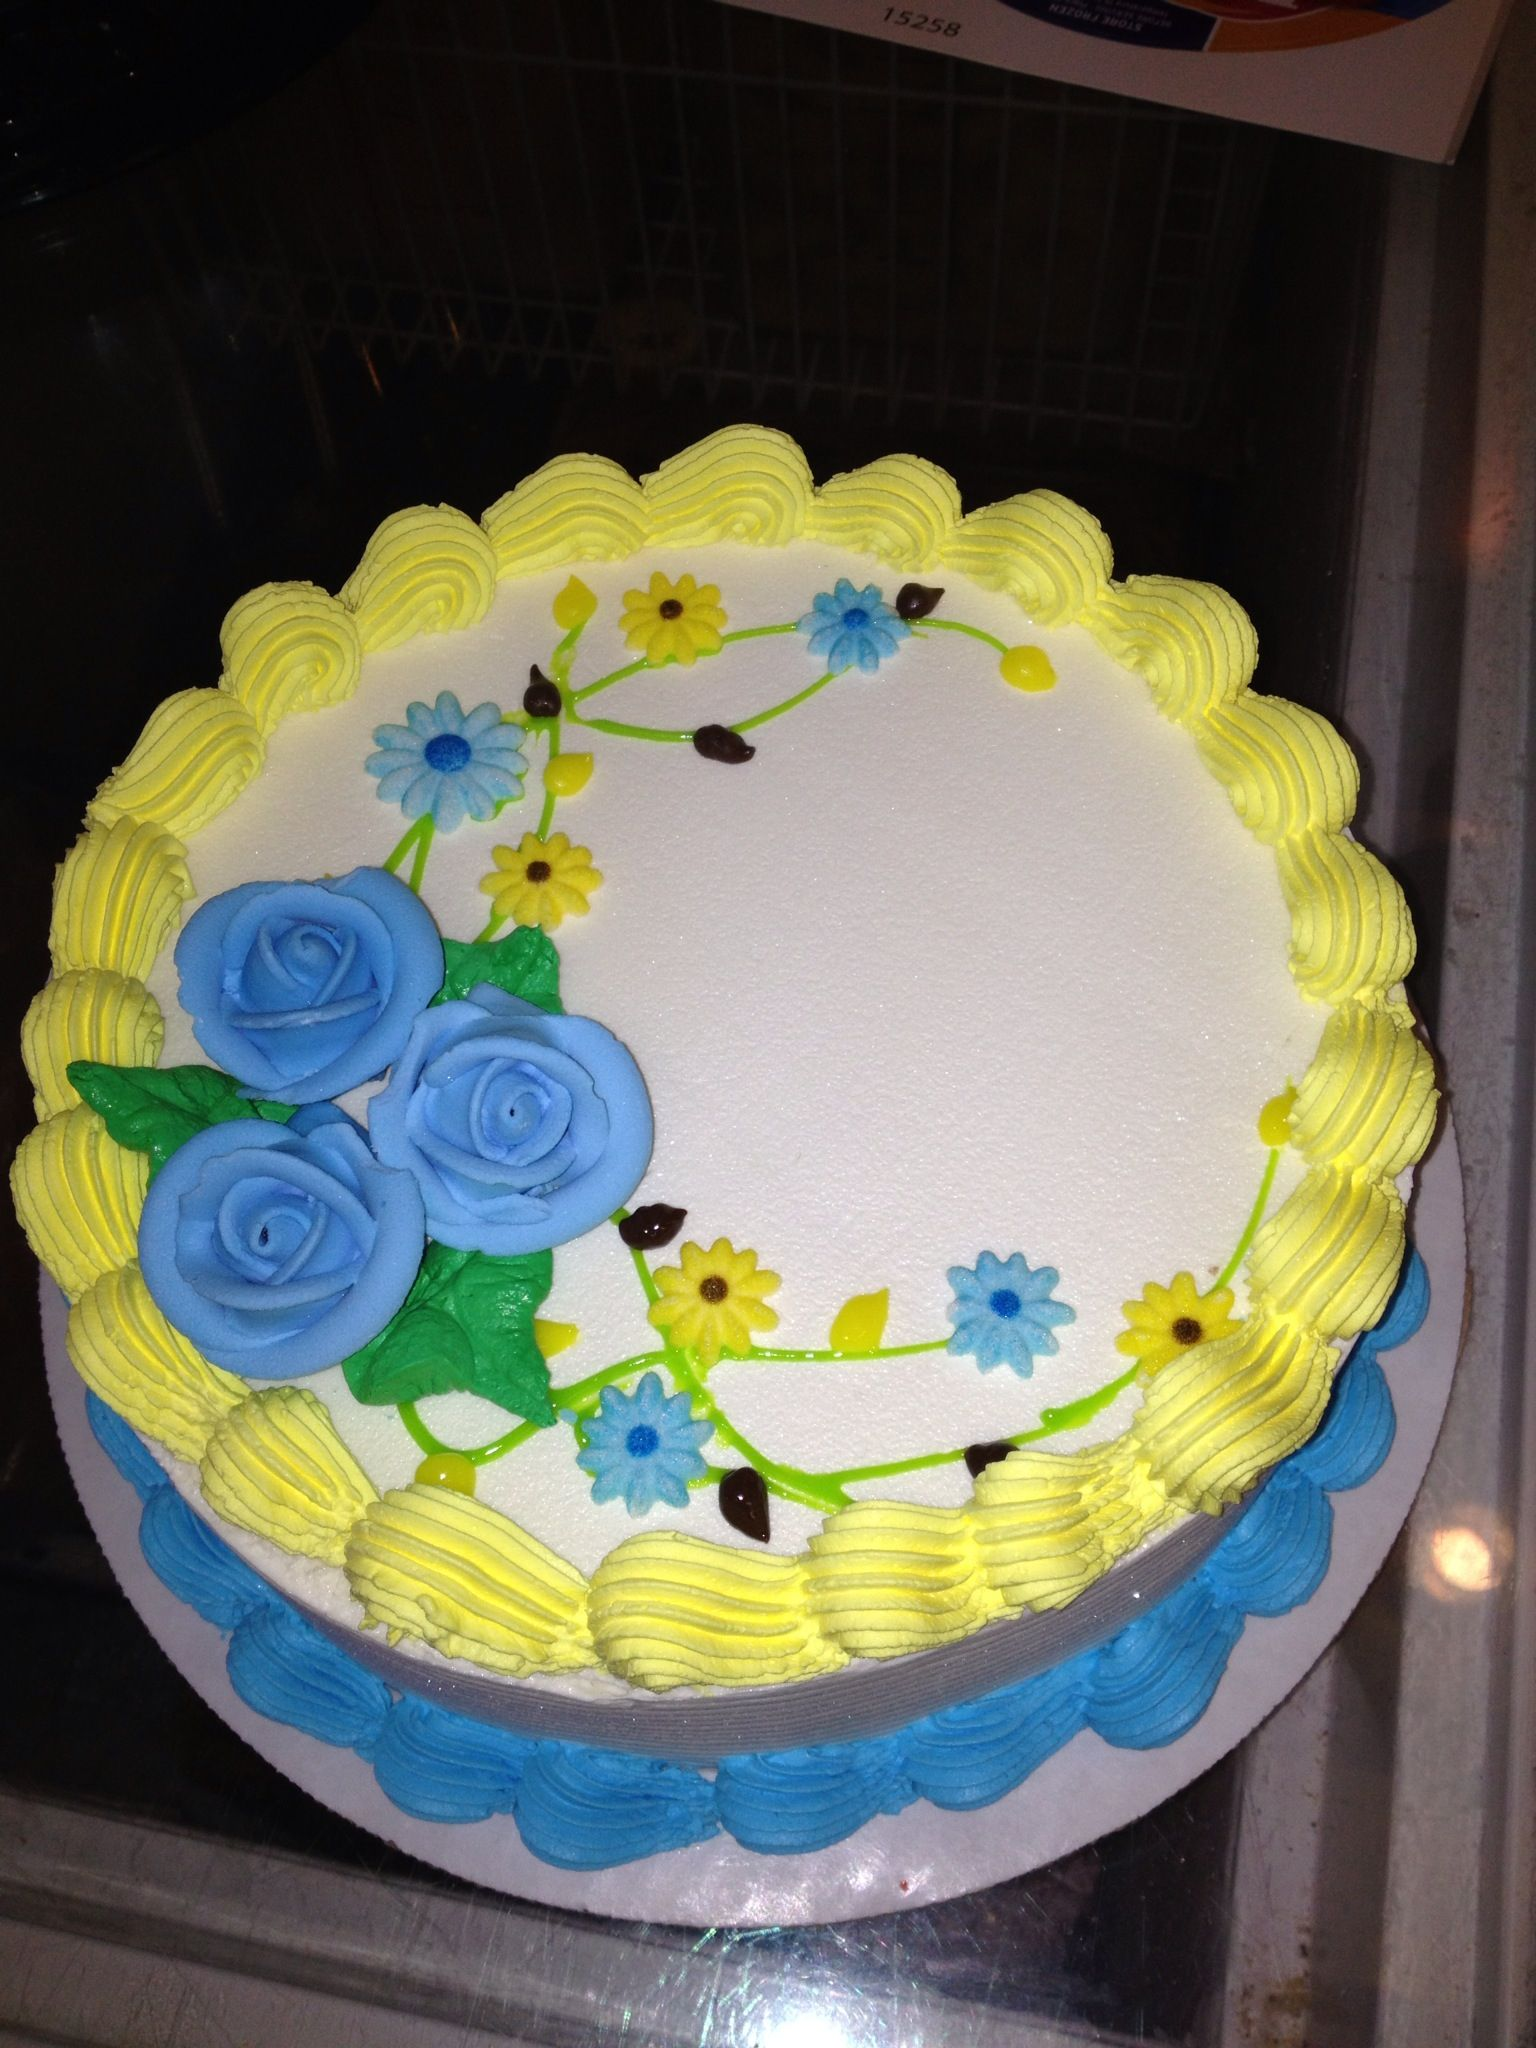 Dairy Queen Sheet Cake Designs : Roses/ flowers...Dq cakes...Dairy Queen Cakes ...